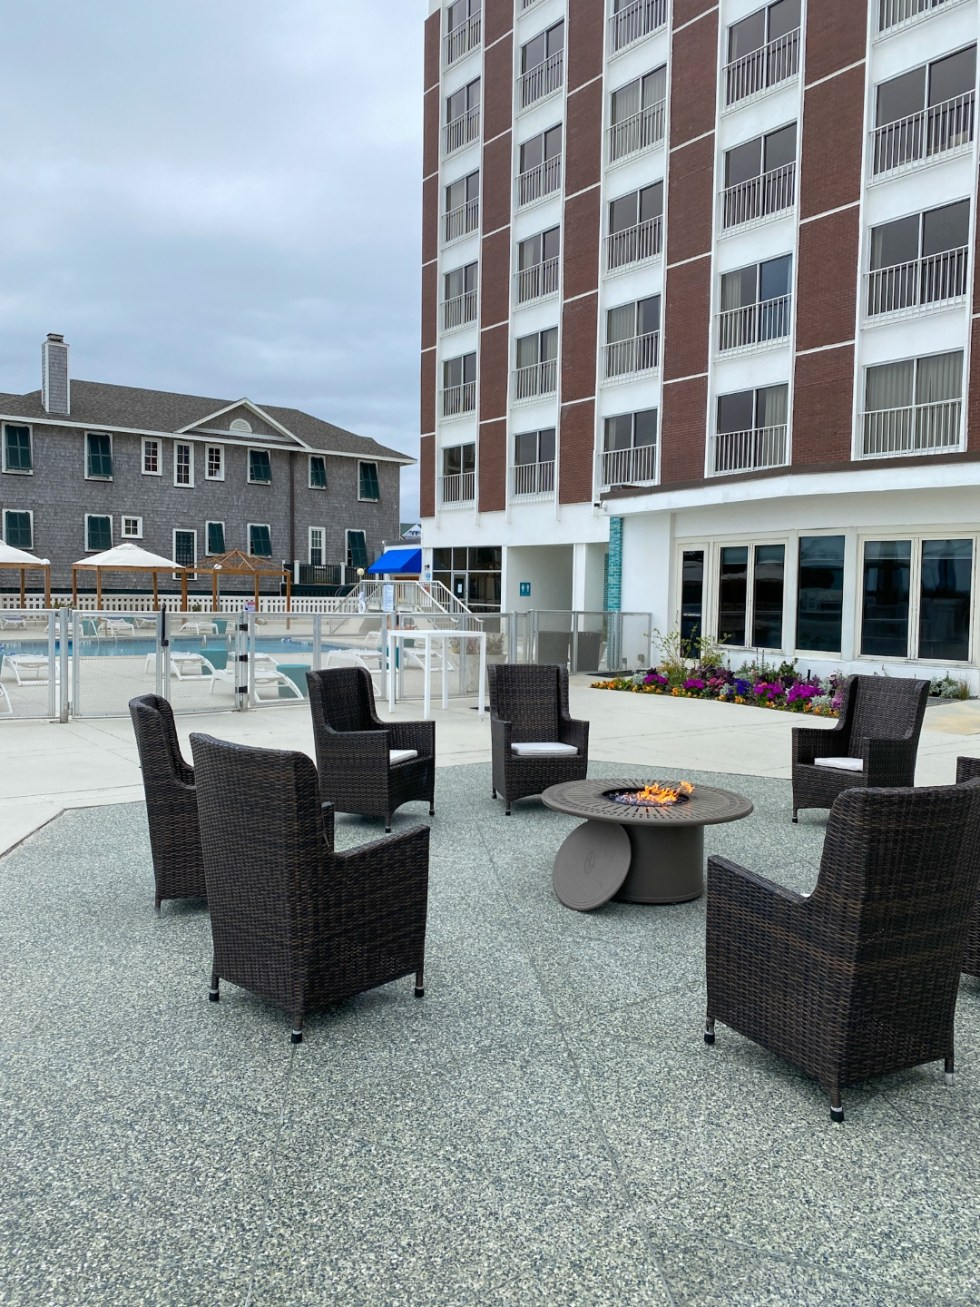 A Spring Weekend in Wilmington, NC: the Best Things to Do - I'm Fixin' To - @imfixintoblog |Weekend in Wilmington by popular NC travel blog, I'm Fixin' To: image of a swimming pool at the Blockade Runner hotel.